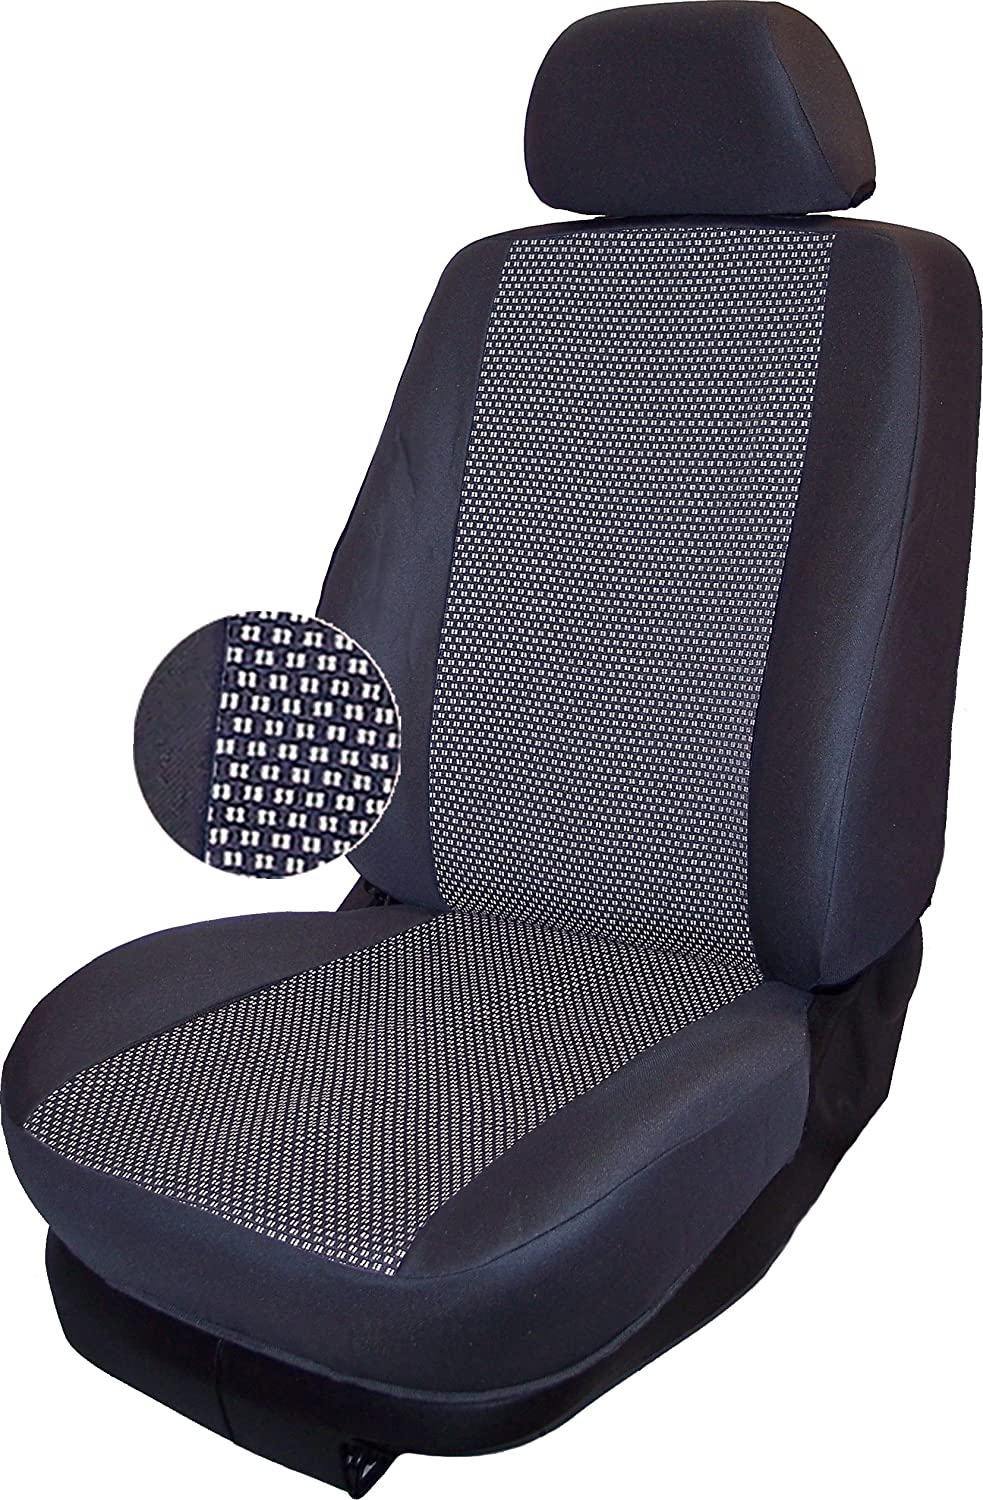 Autokleidung Clothing Seat Covers Made to Measure/DH G0316000 Double Car Seat Back – Grey – 03